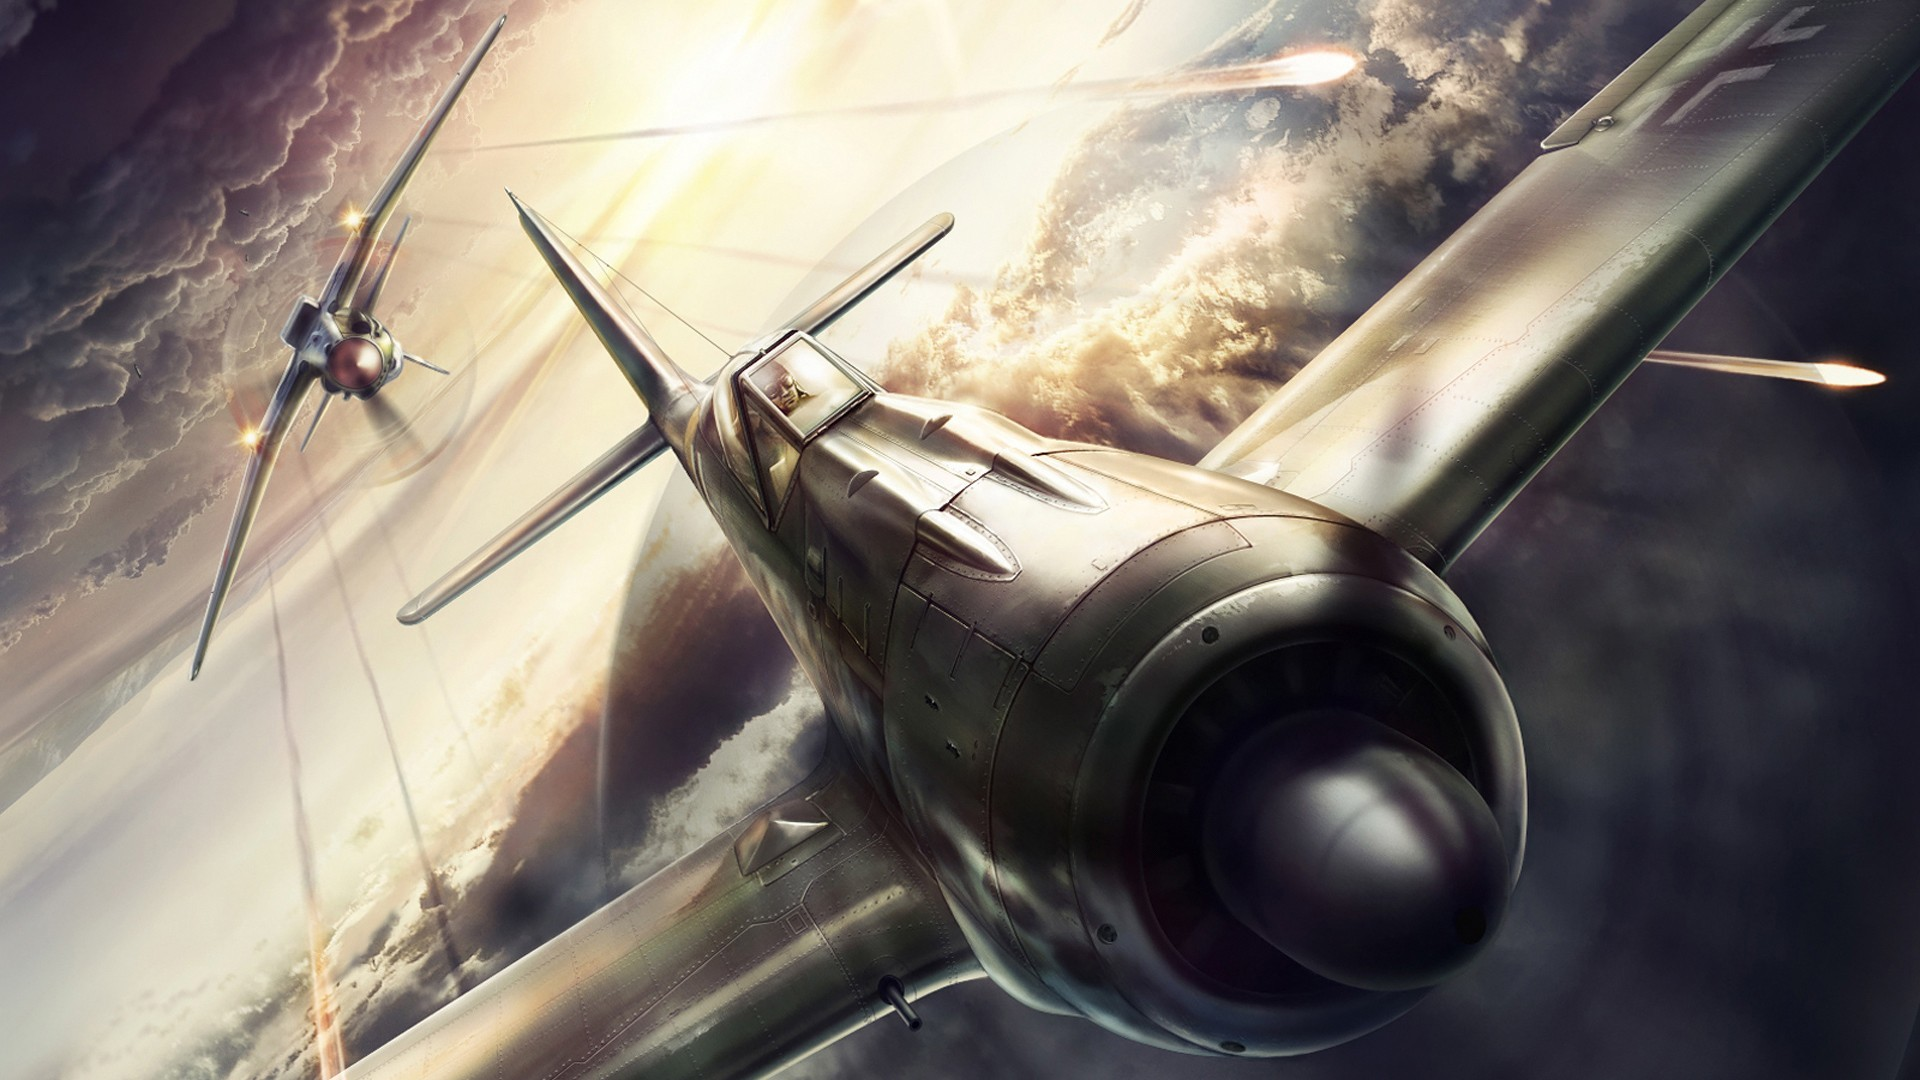 aircraft war pilot mig skies wallpaper | allwallpaper.in #7986 | pc | en